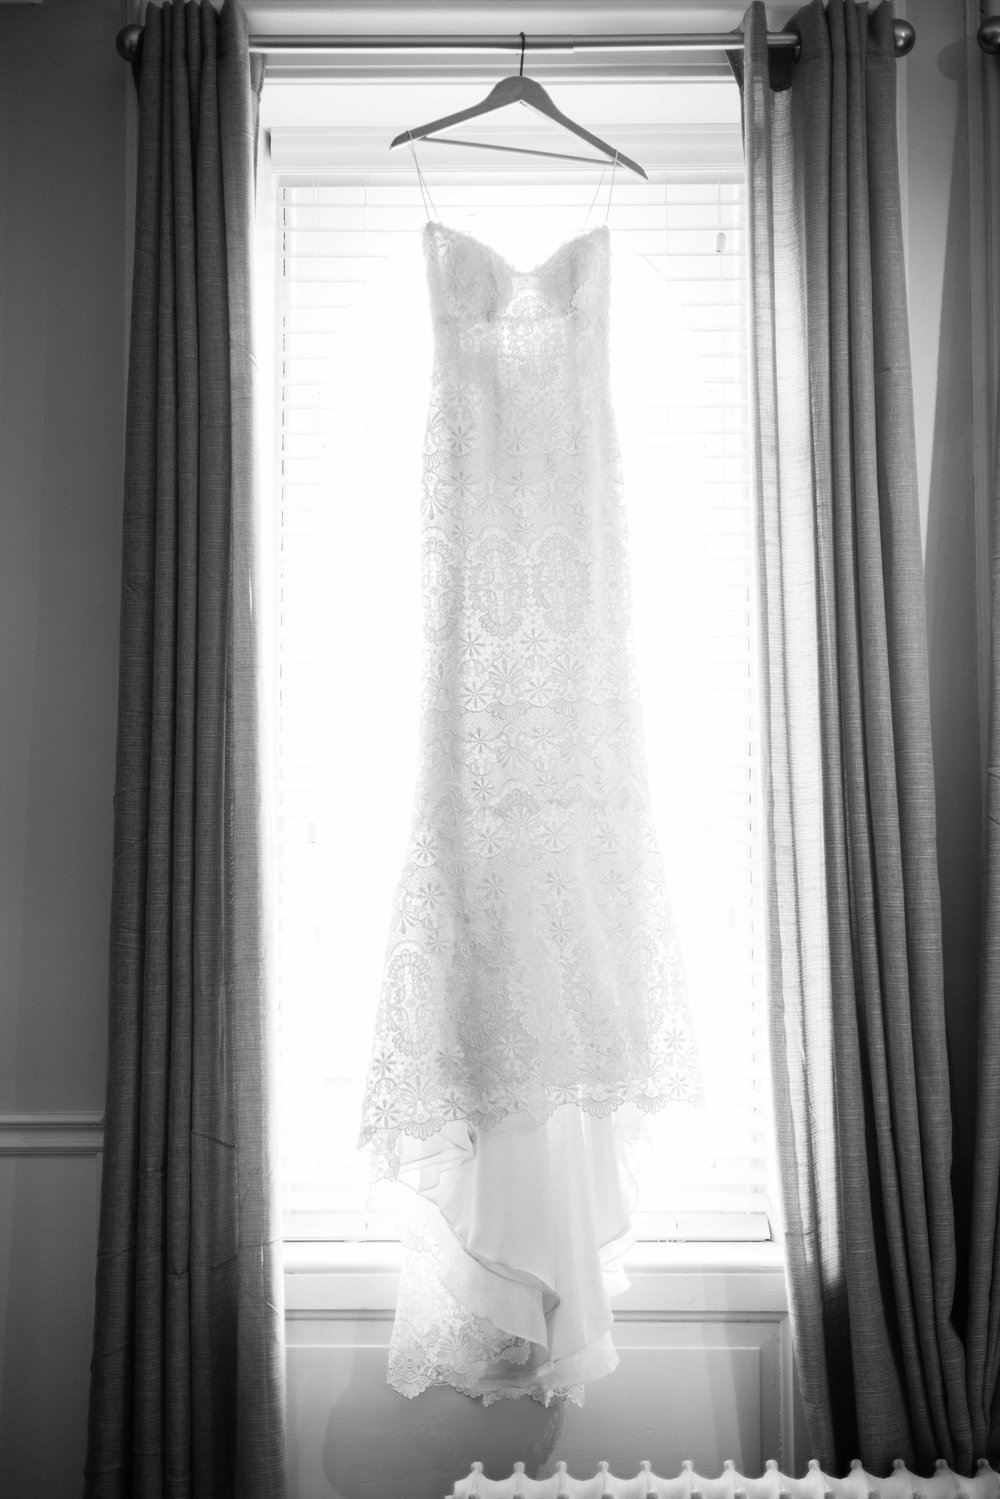 French lace wedding dress in window.